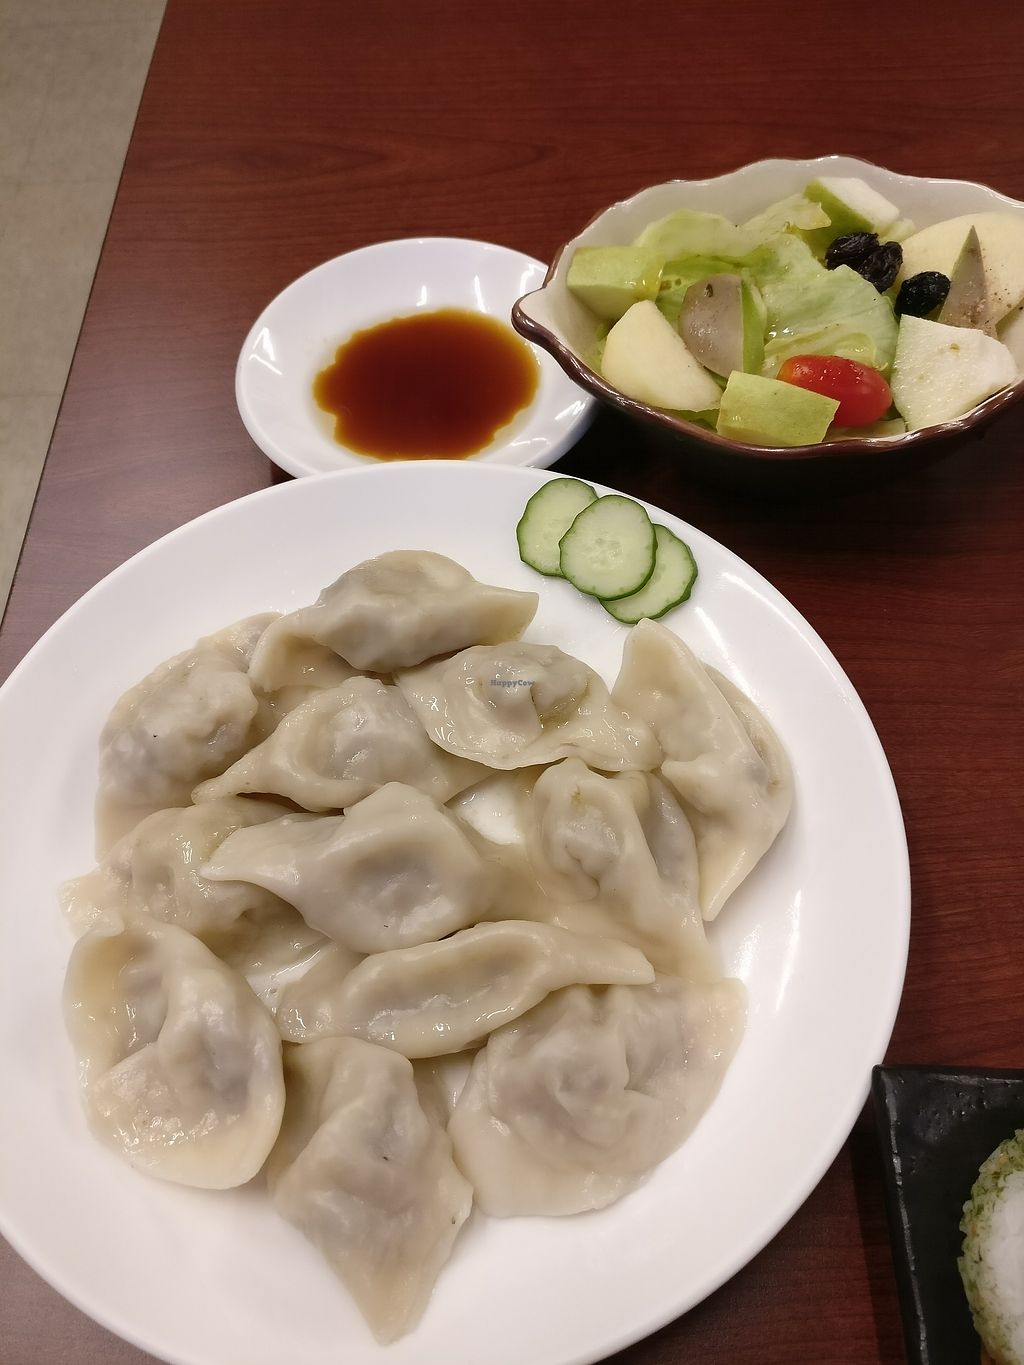 """Photo of Tai Lai  by <a href=""""/members/profile/bulma"""">bulma</a> <br/>dumplings and plum Salat  <br/> August 21, 2017  - <a href='/contact/abuse/image/39073/295174'>Report</a>"""